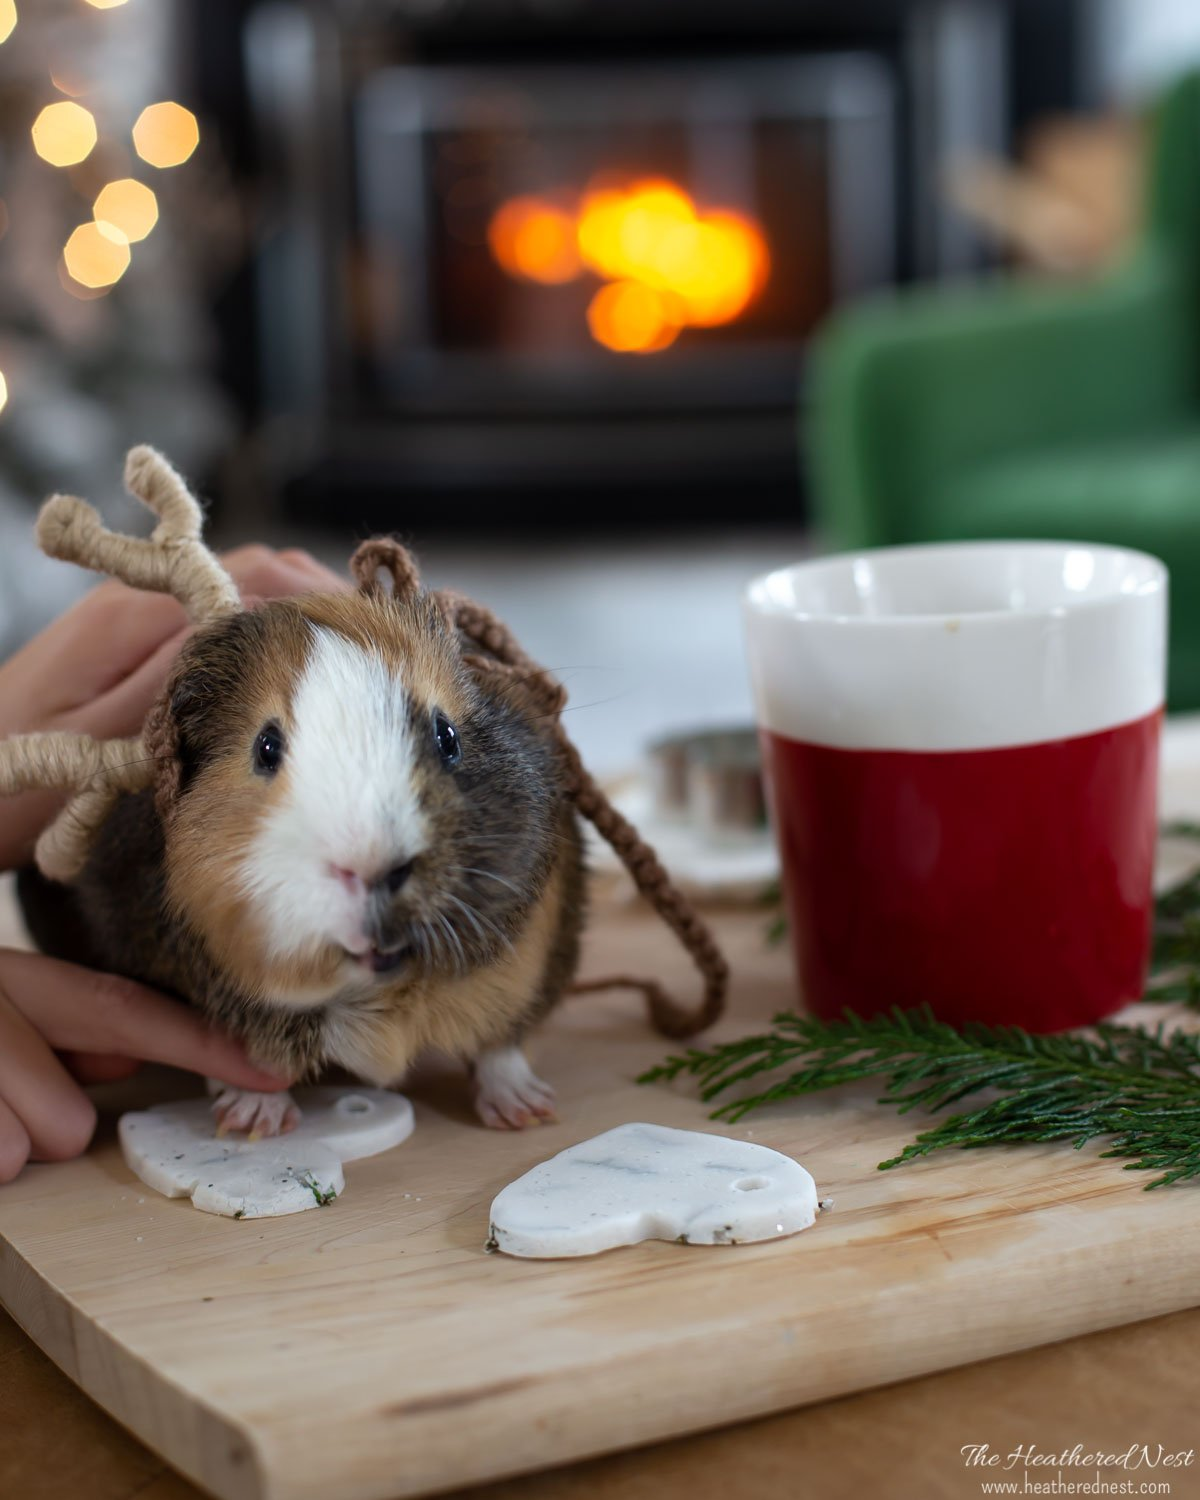 guinea pig making a paw-print salt dough ornament seen on a wood cutting board with cup of coffee close-by, fireplace in background. Guinea pig wearing reindeer costume.